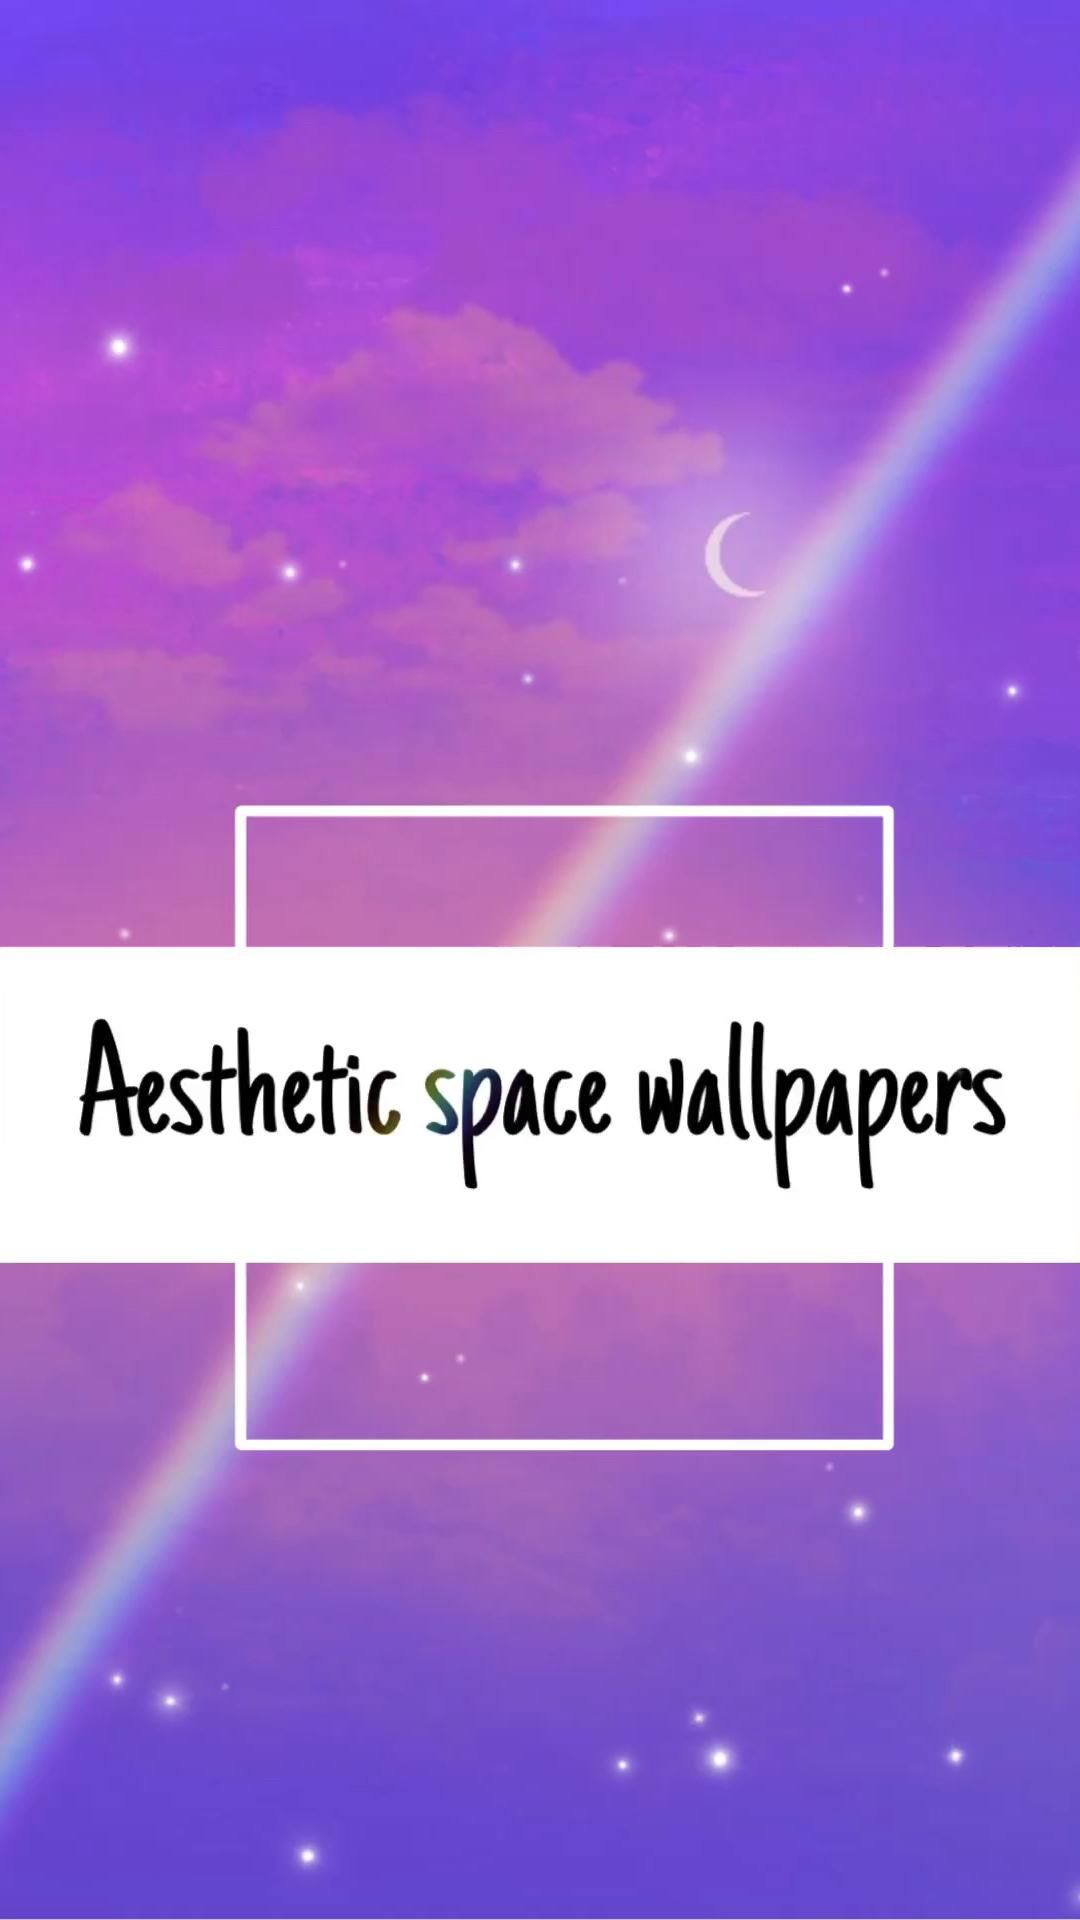 Aesthetic space wallpapers